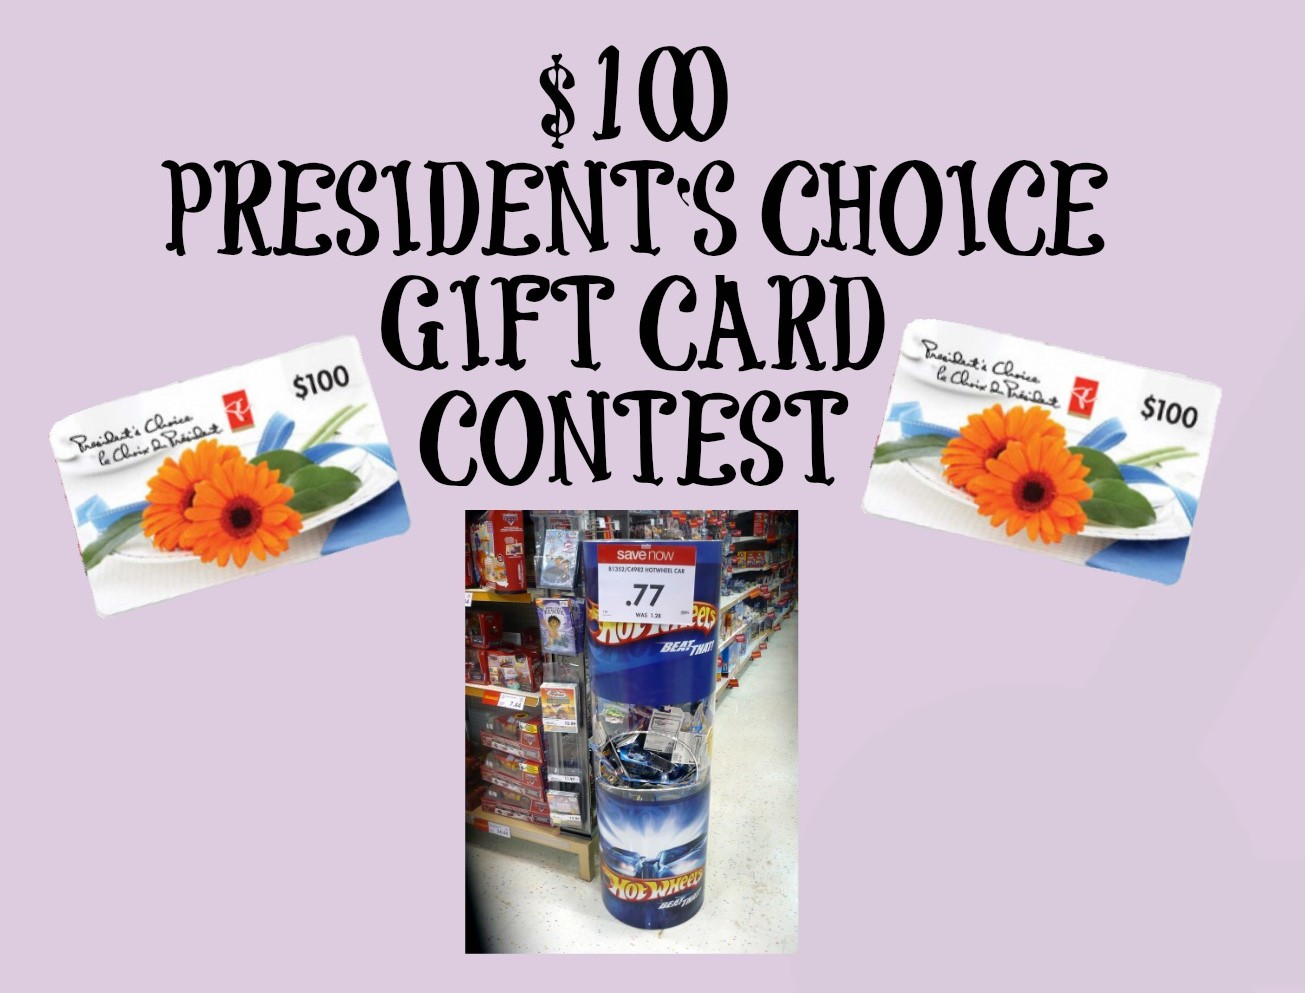 LOBLAWS/NO FRILLS GIFT CARD CONTEST